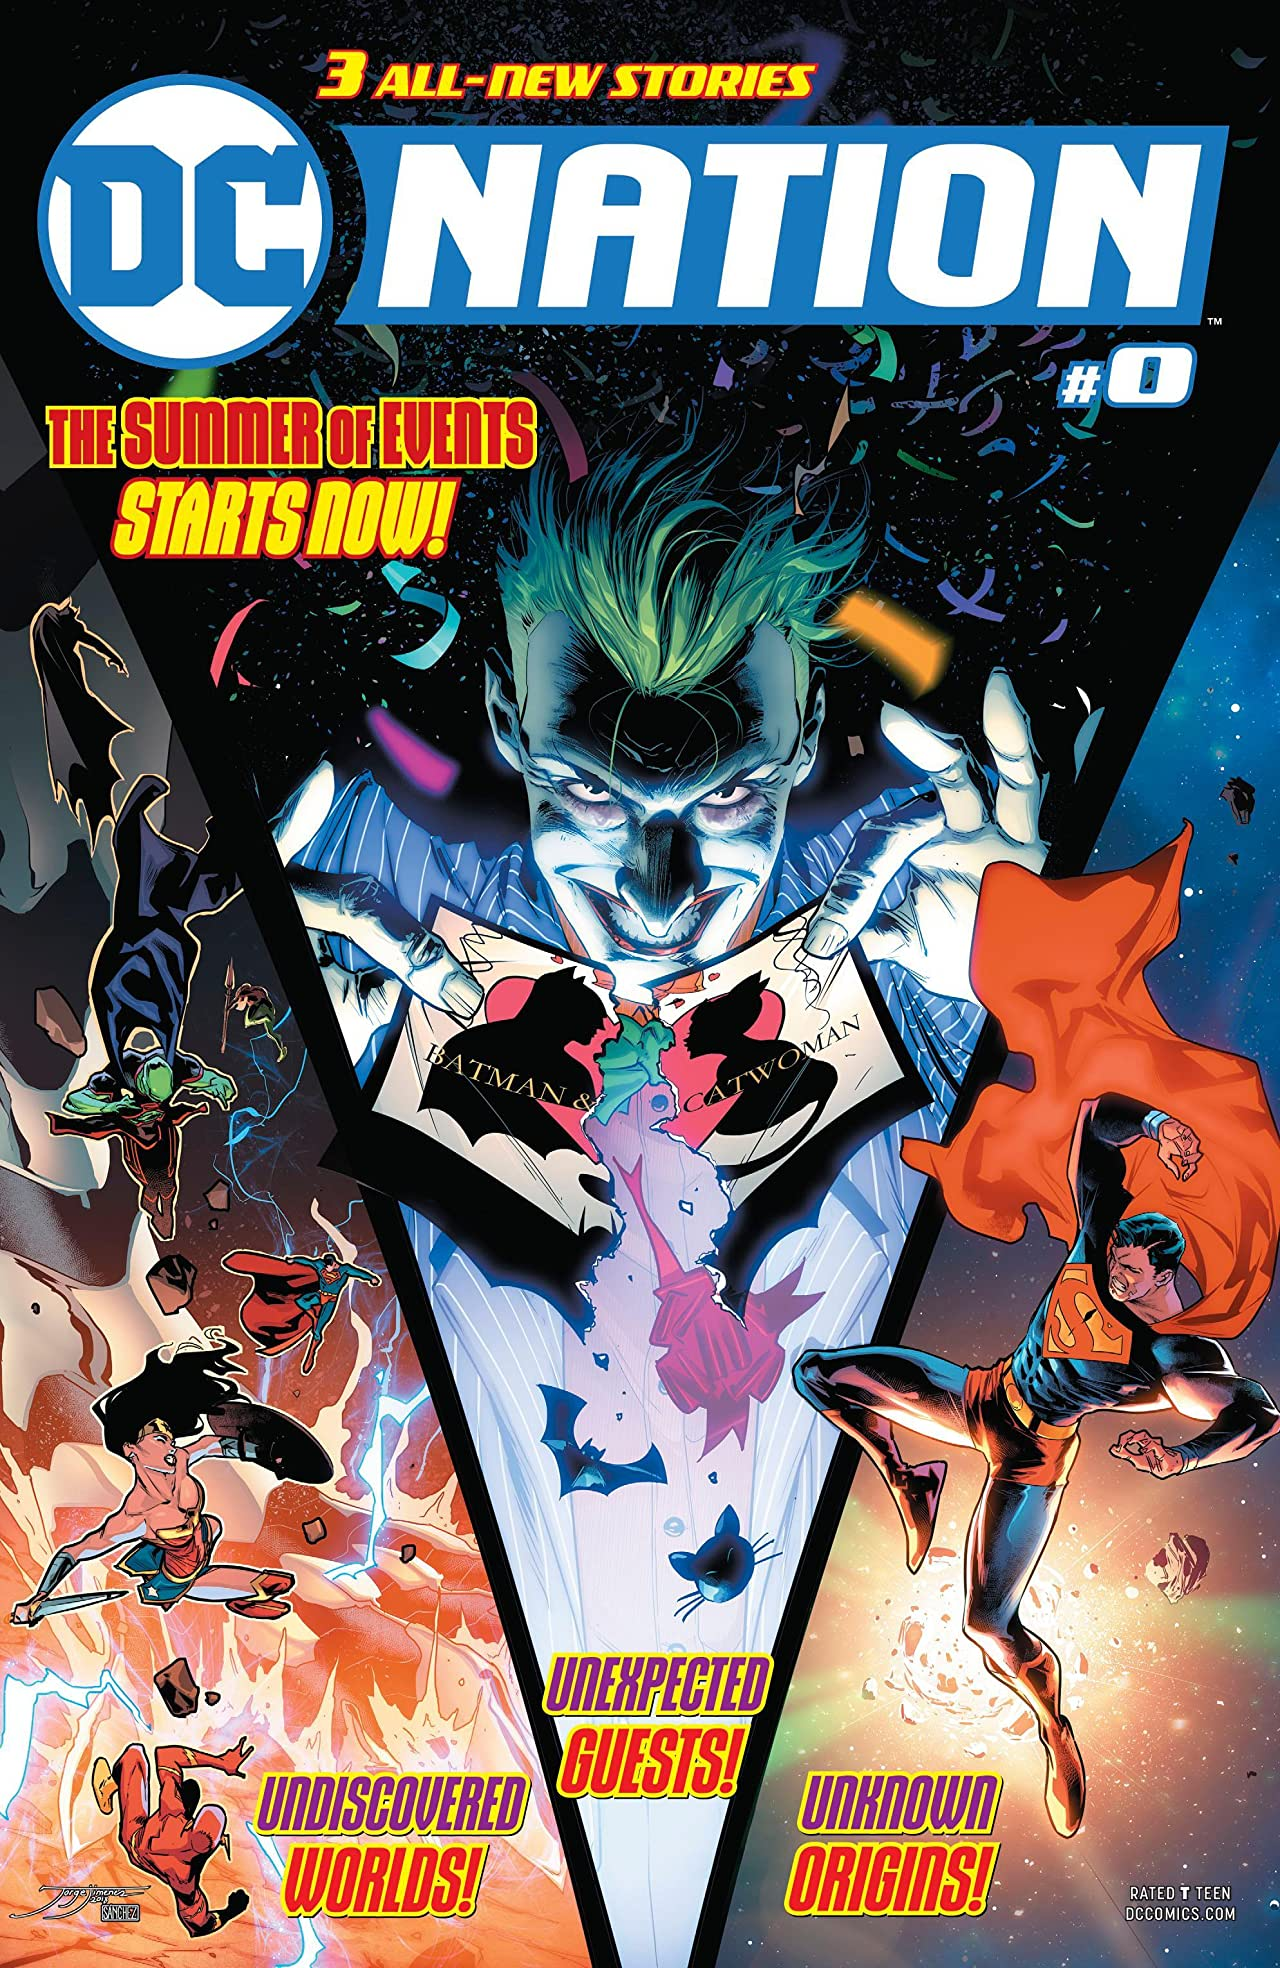 DC Nation (2018) #0